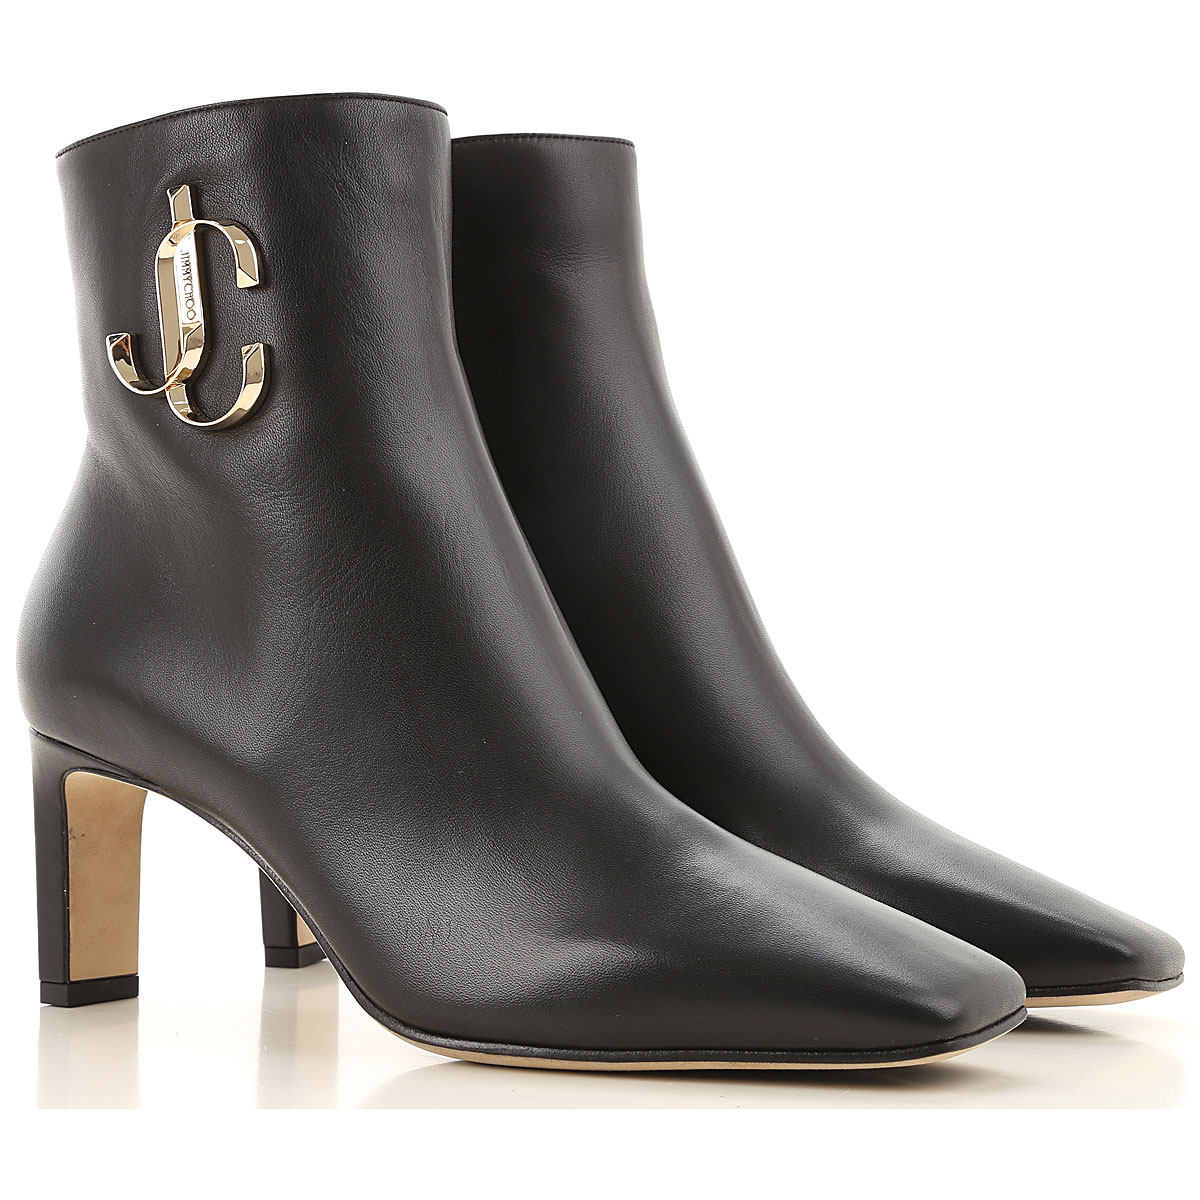 Jimmy Choo Boots for Women, Booties On Sale, Black, Leather, 2019, 11 6 6.5 7 8 8.5 9